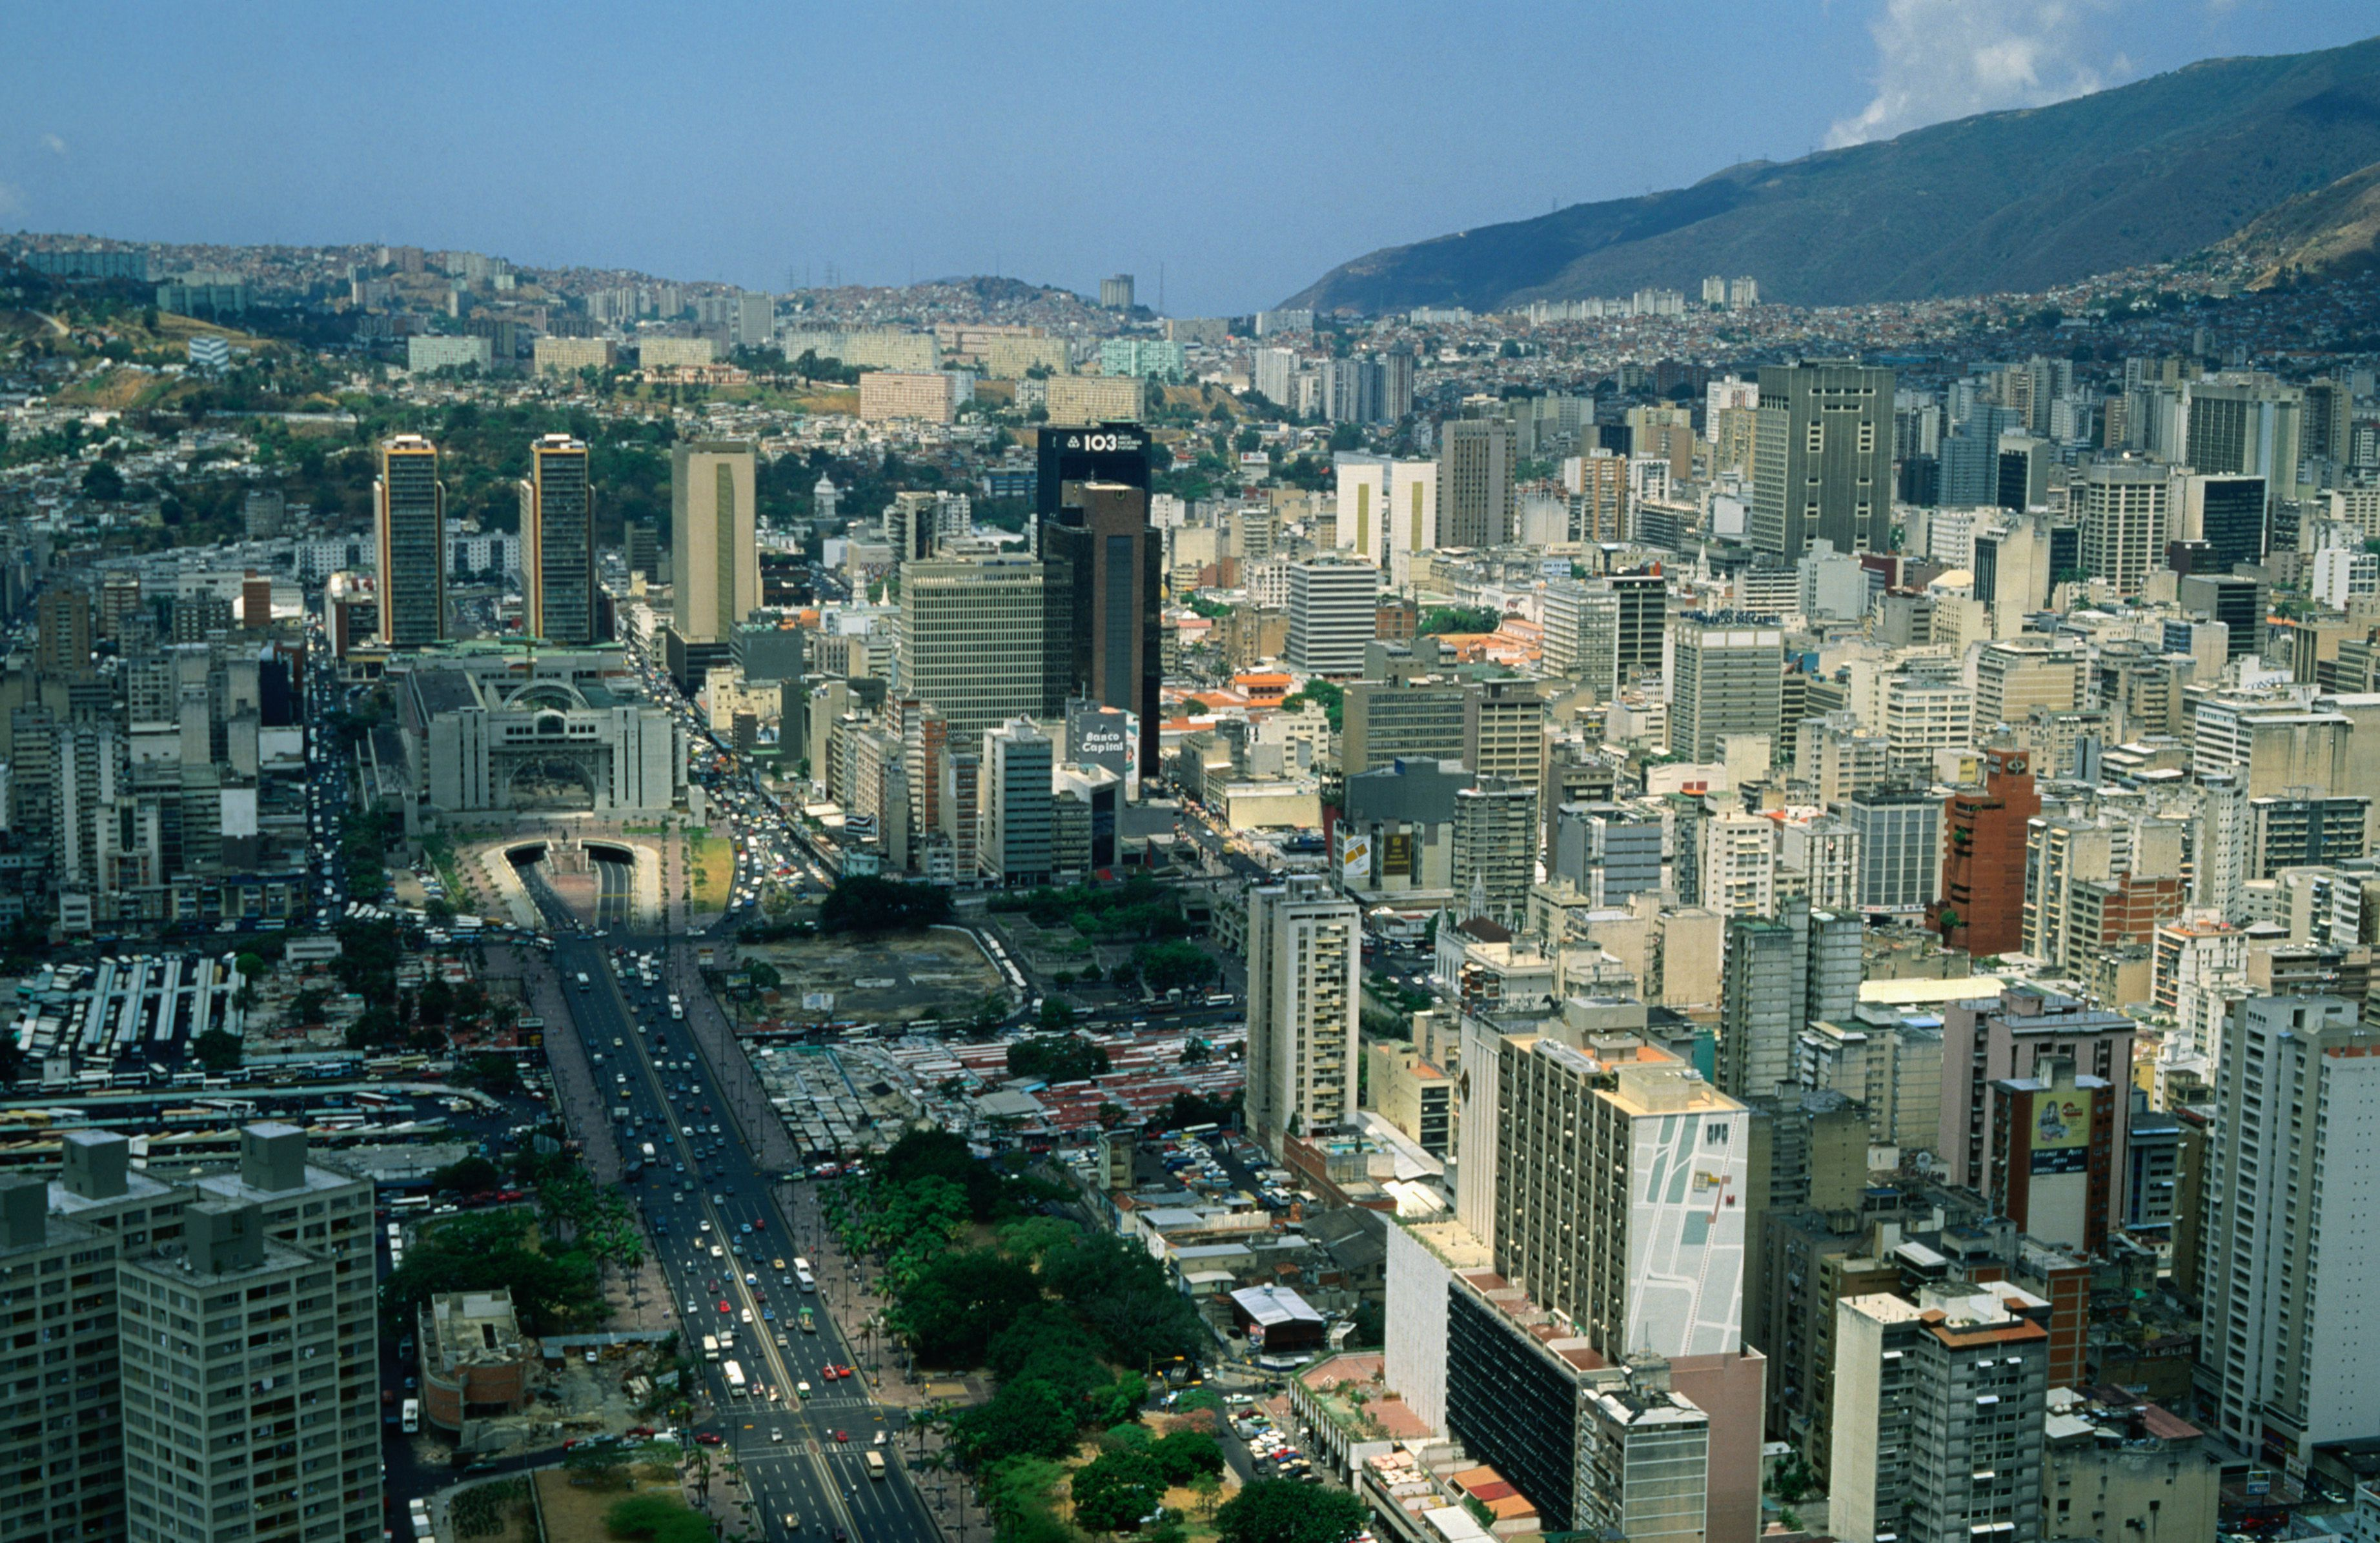 View of downtown Caracas, a valley of skyscrapers.